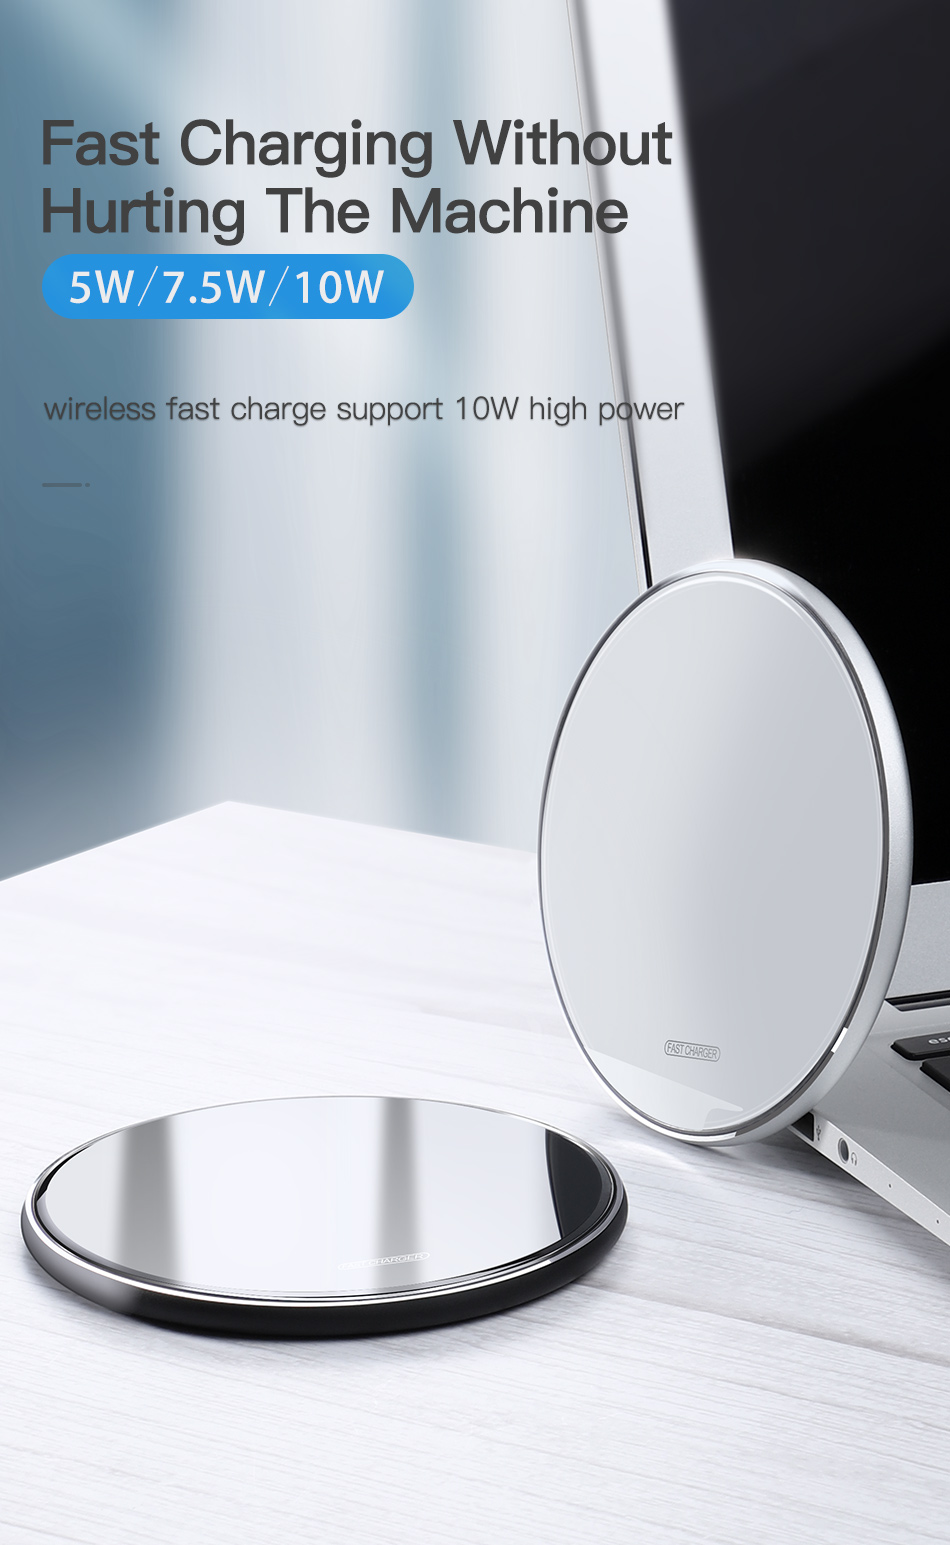 KUULAA Wireless Charger 10W Qi for Samsung S9 S10+ Note 9 8 Mirror Wireless Charging Pad 7.5W for iPhone X/XS Max XR 8 Plu 1